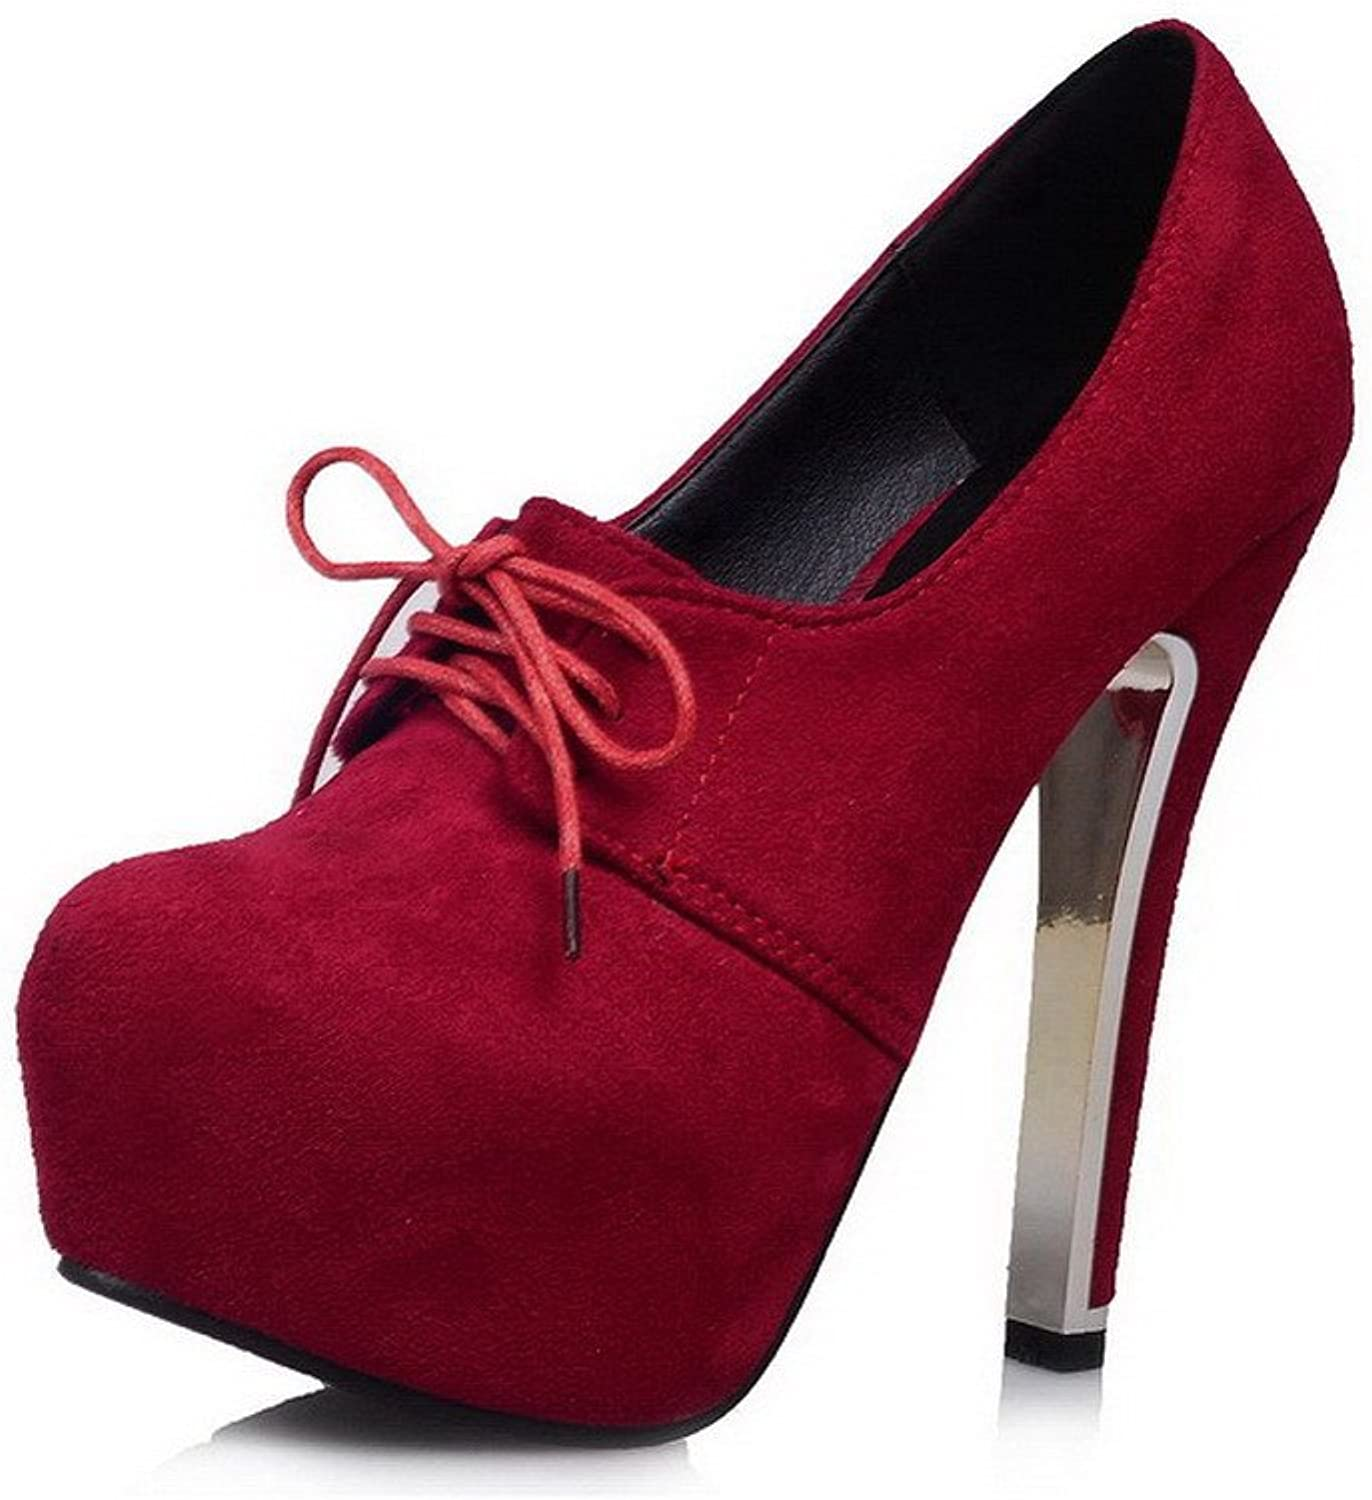 AmoonyFashion Women's Closed-toe Frosted Lace-up High-heels Pumps-shoes